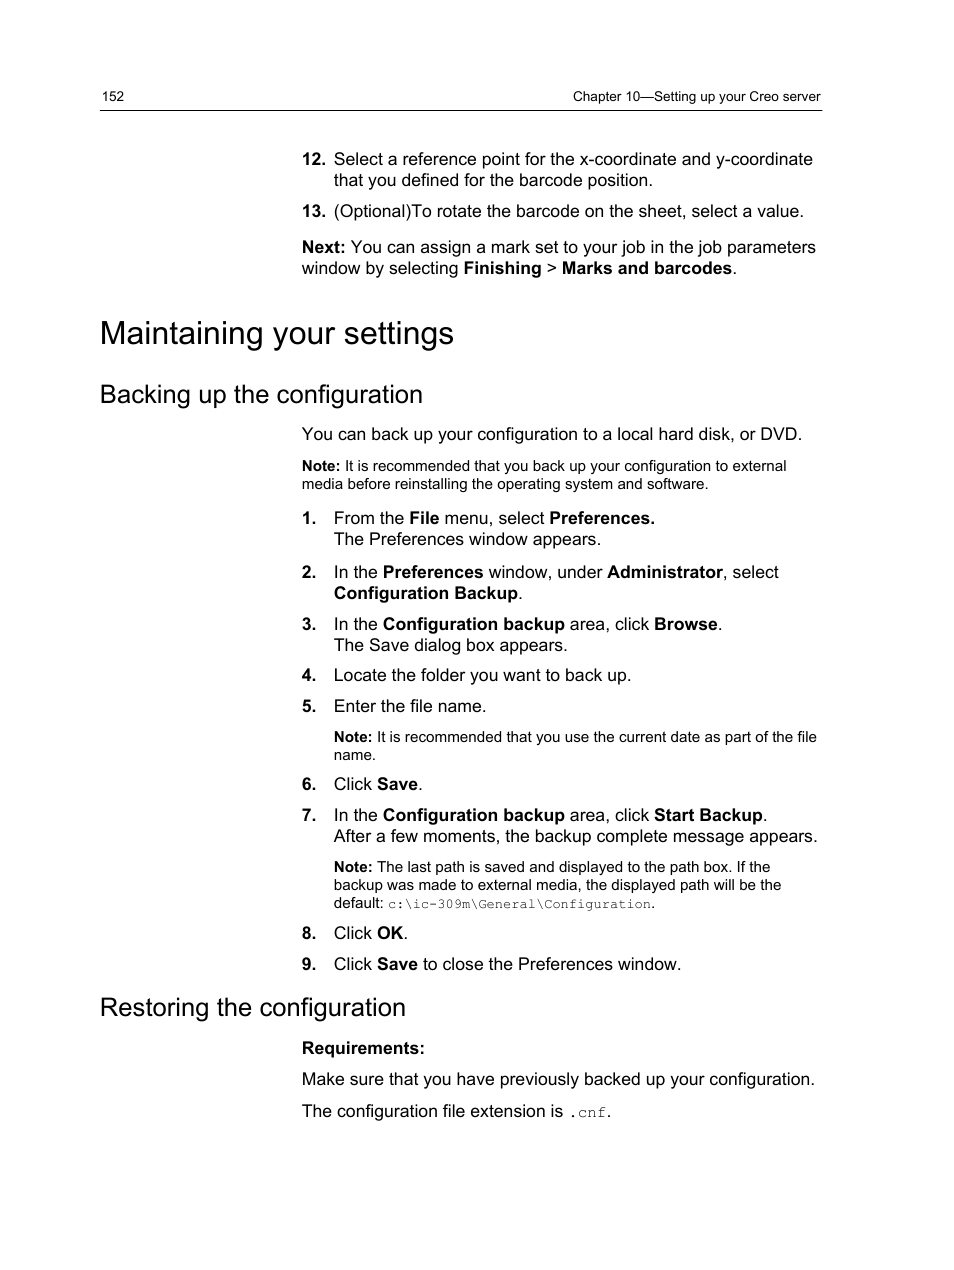 Maintaining your settings, Backing up the configuration, Restoring